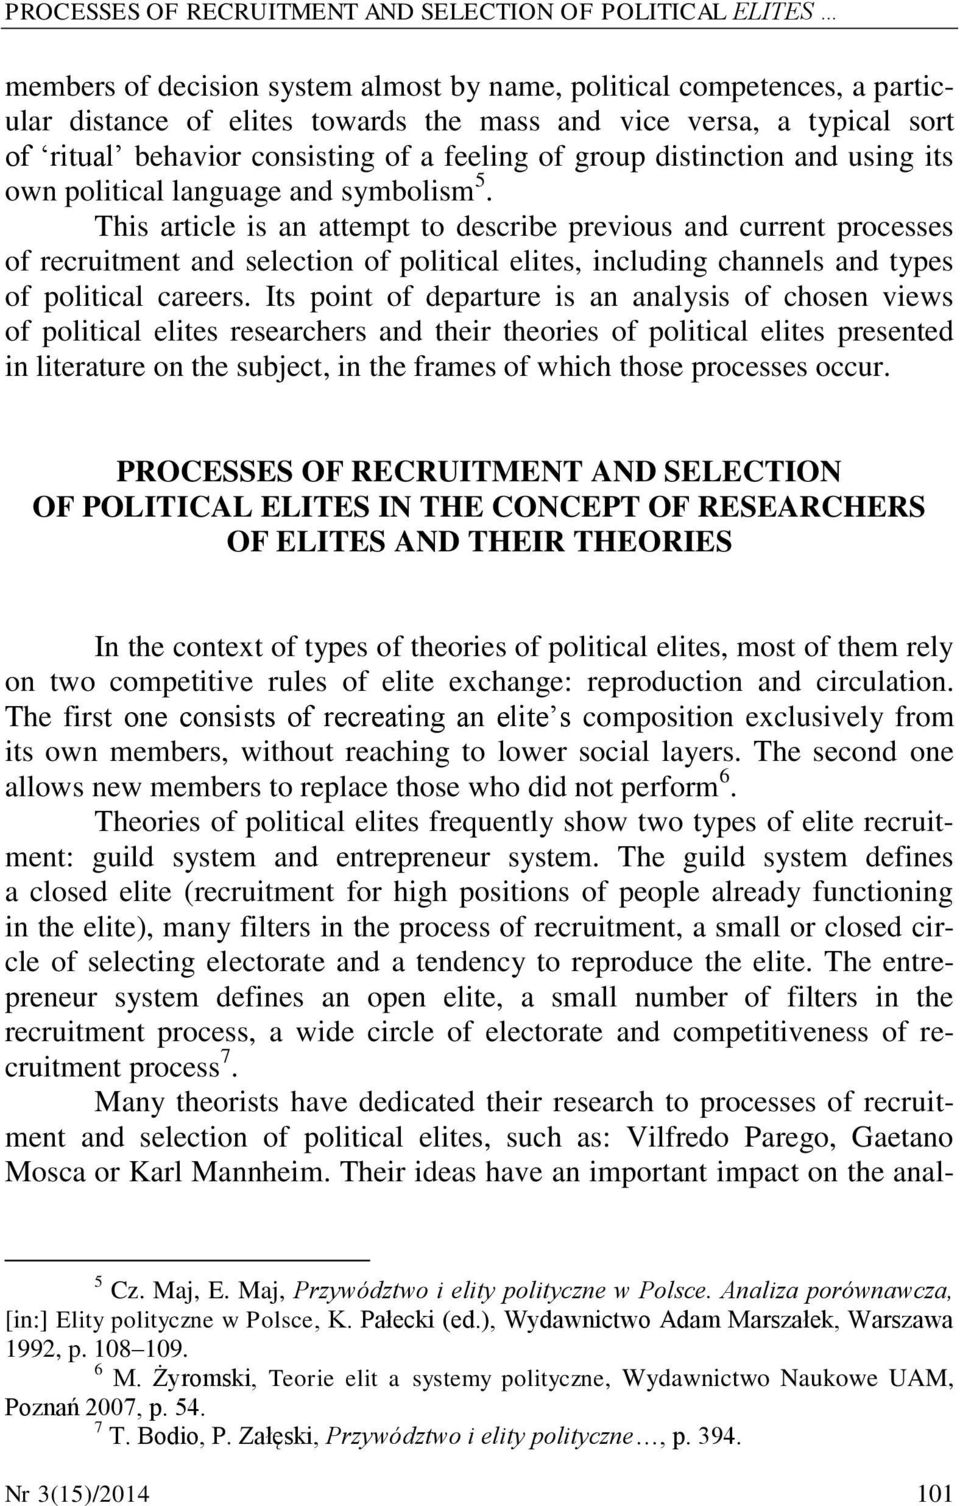 This article is an attempt to describe previous and current processes of recruitment and selection of political elites, including channels and types of political careers.